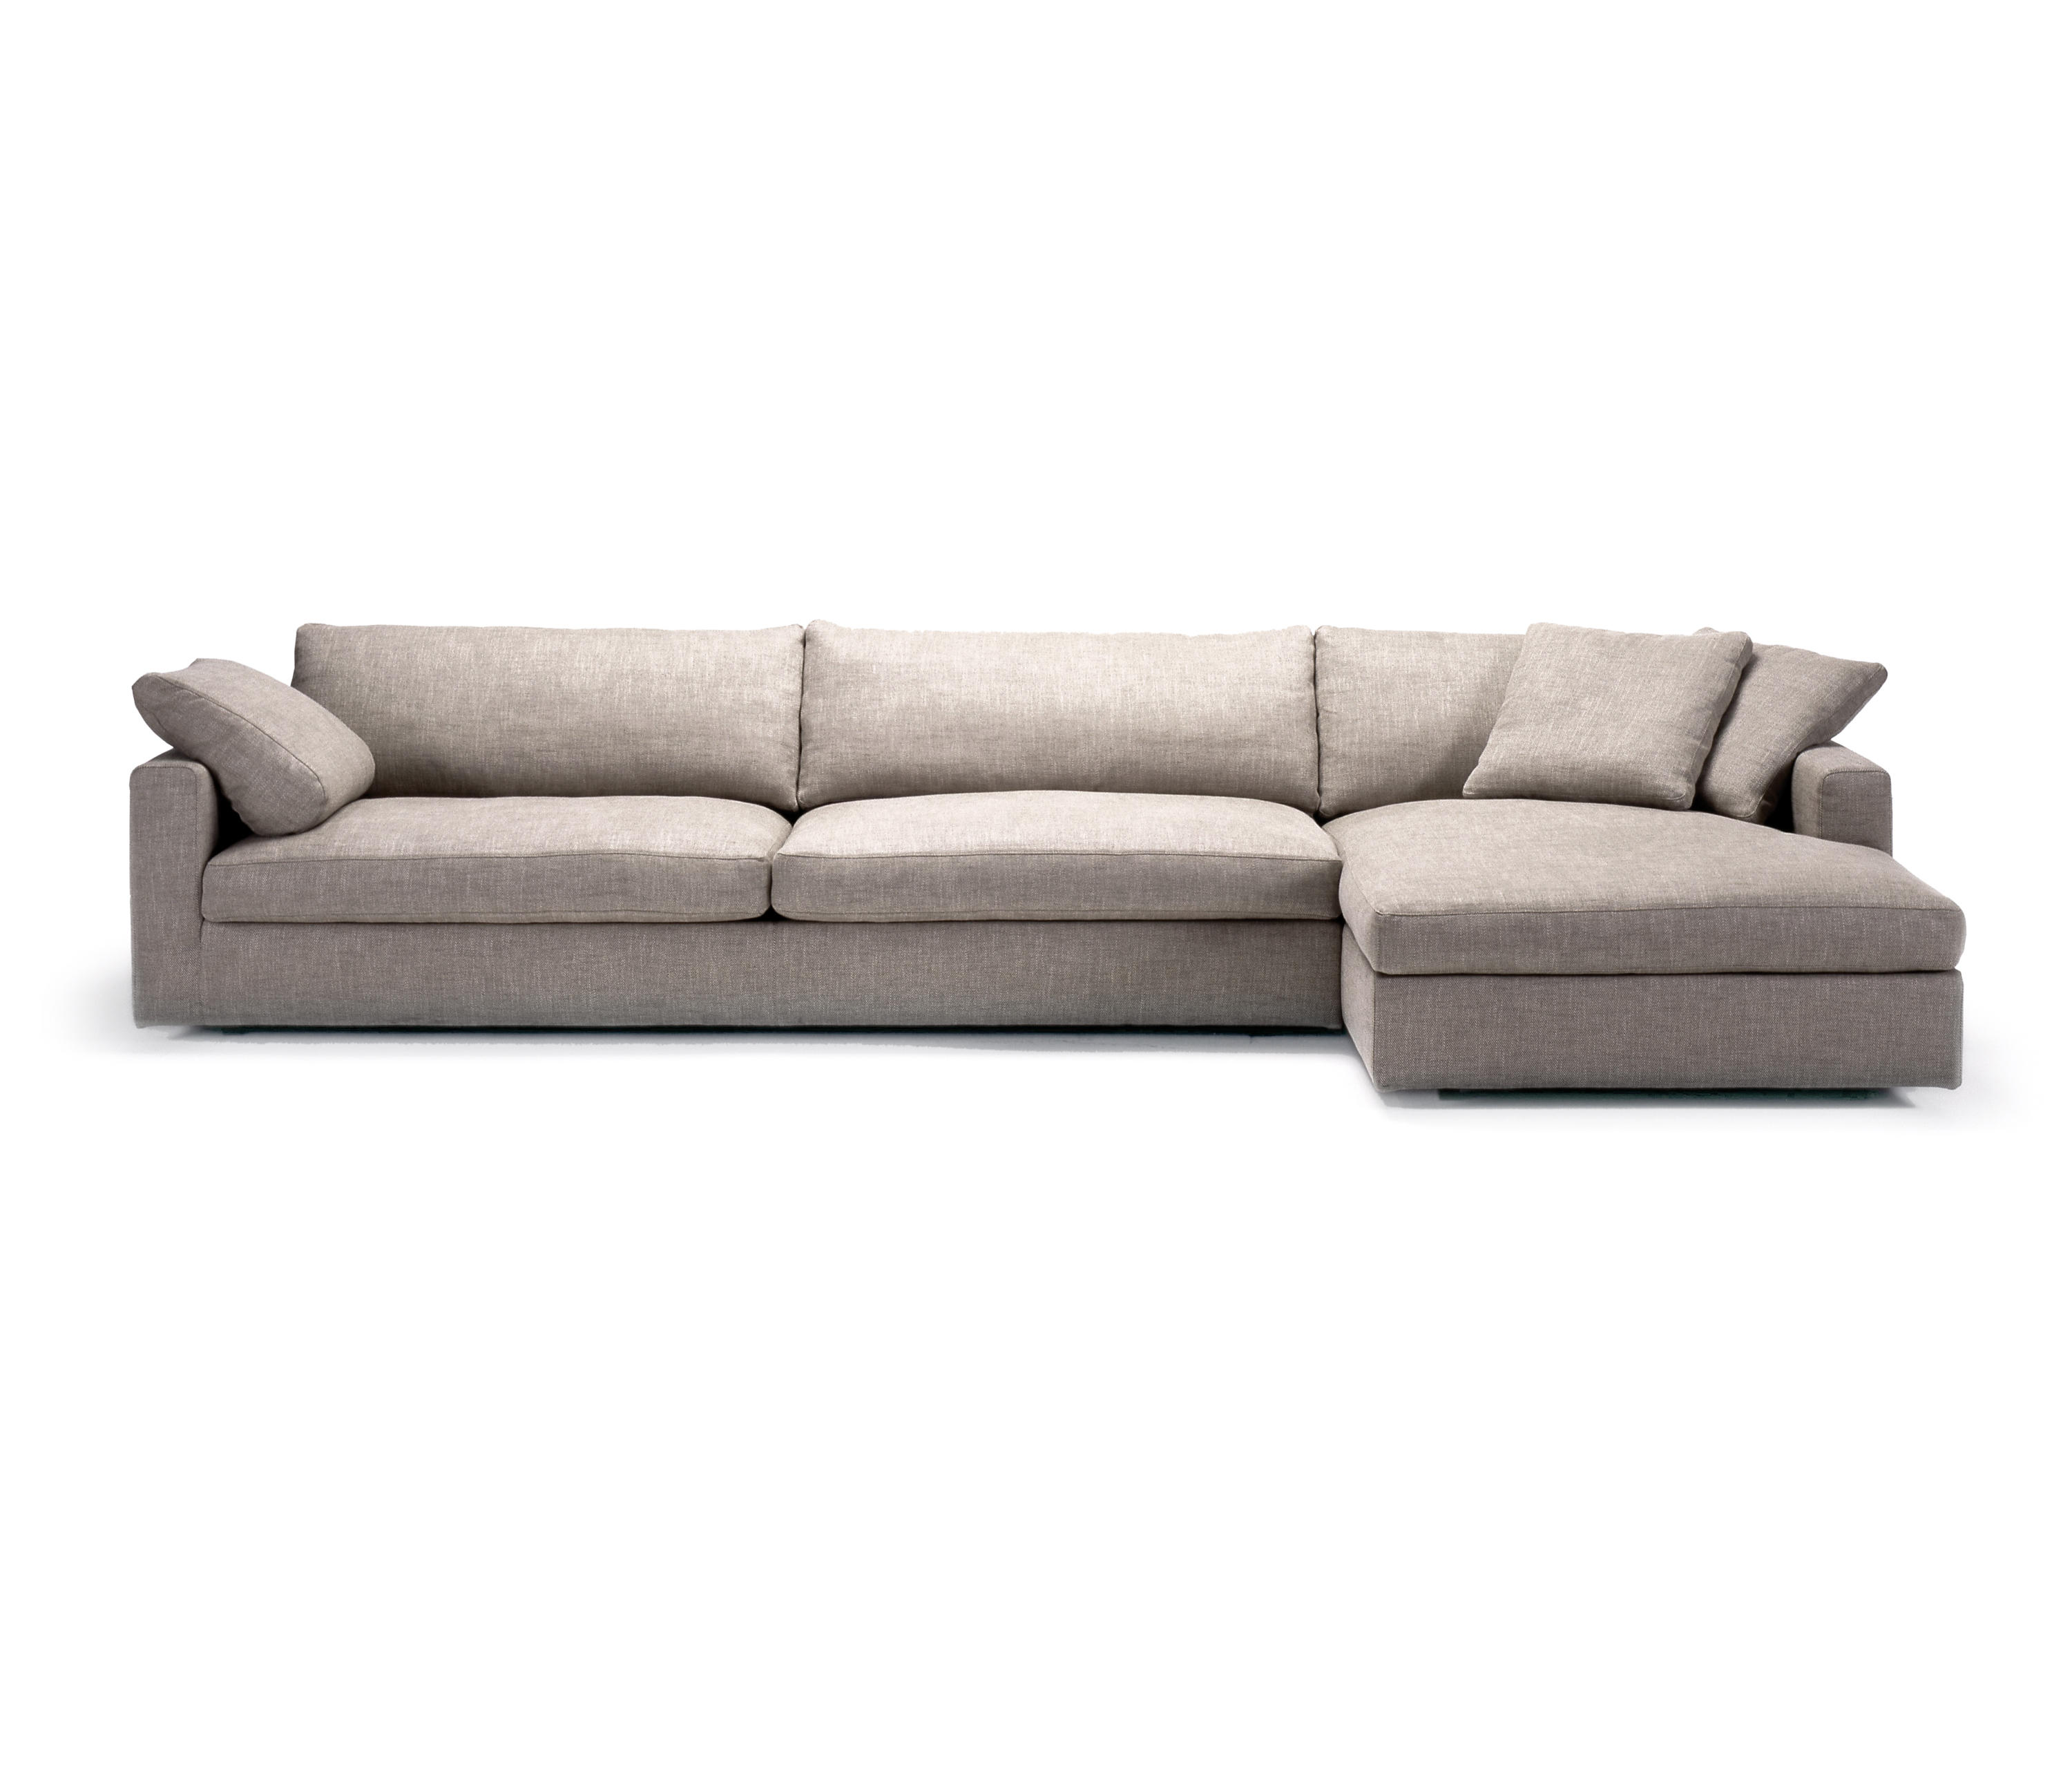 Fabio sofa chaise longue modular sofa systems from for Sofa chester chaise longue